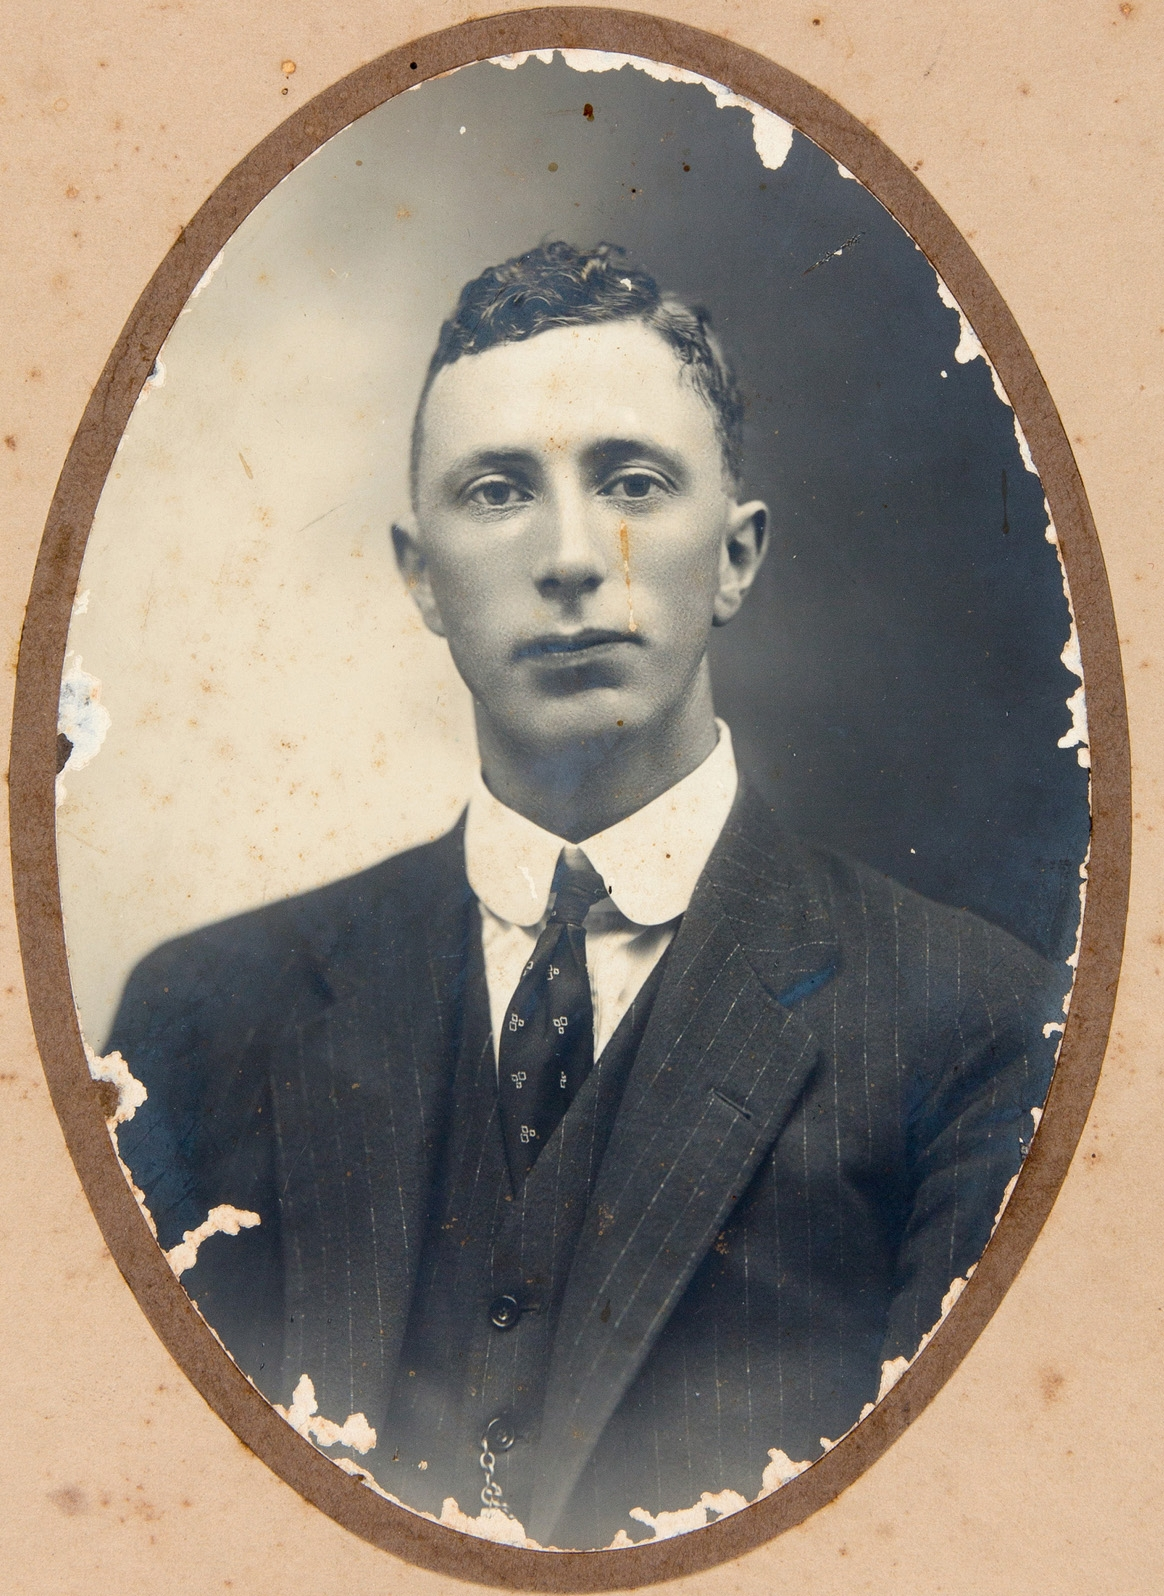 Black and white portrait in oval frame of young man in suit.